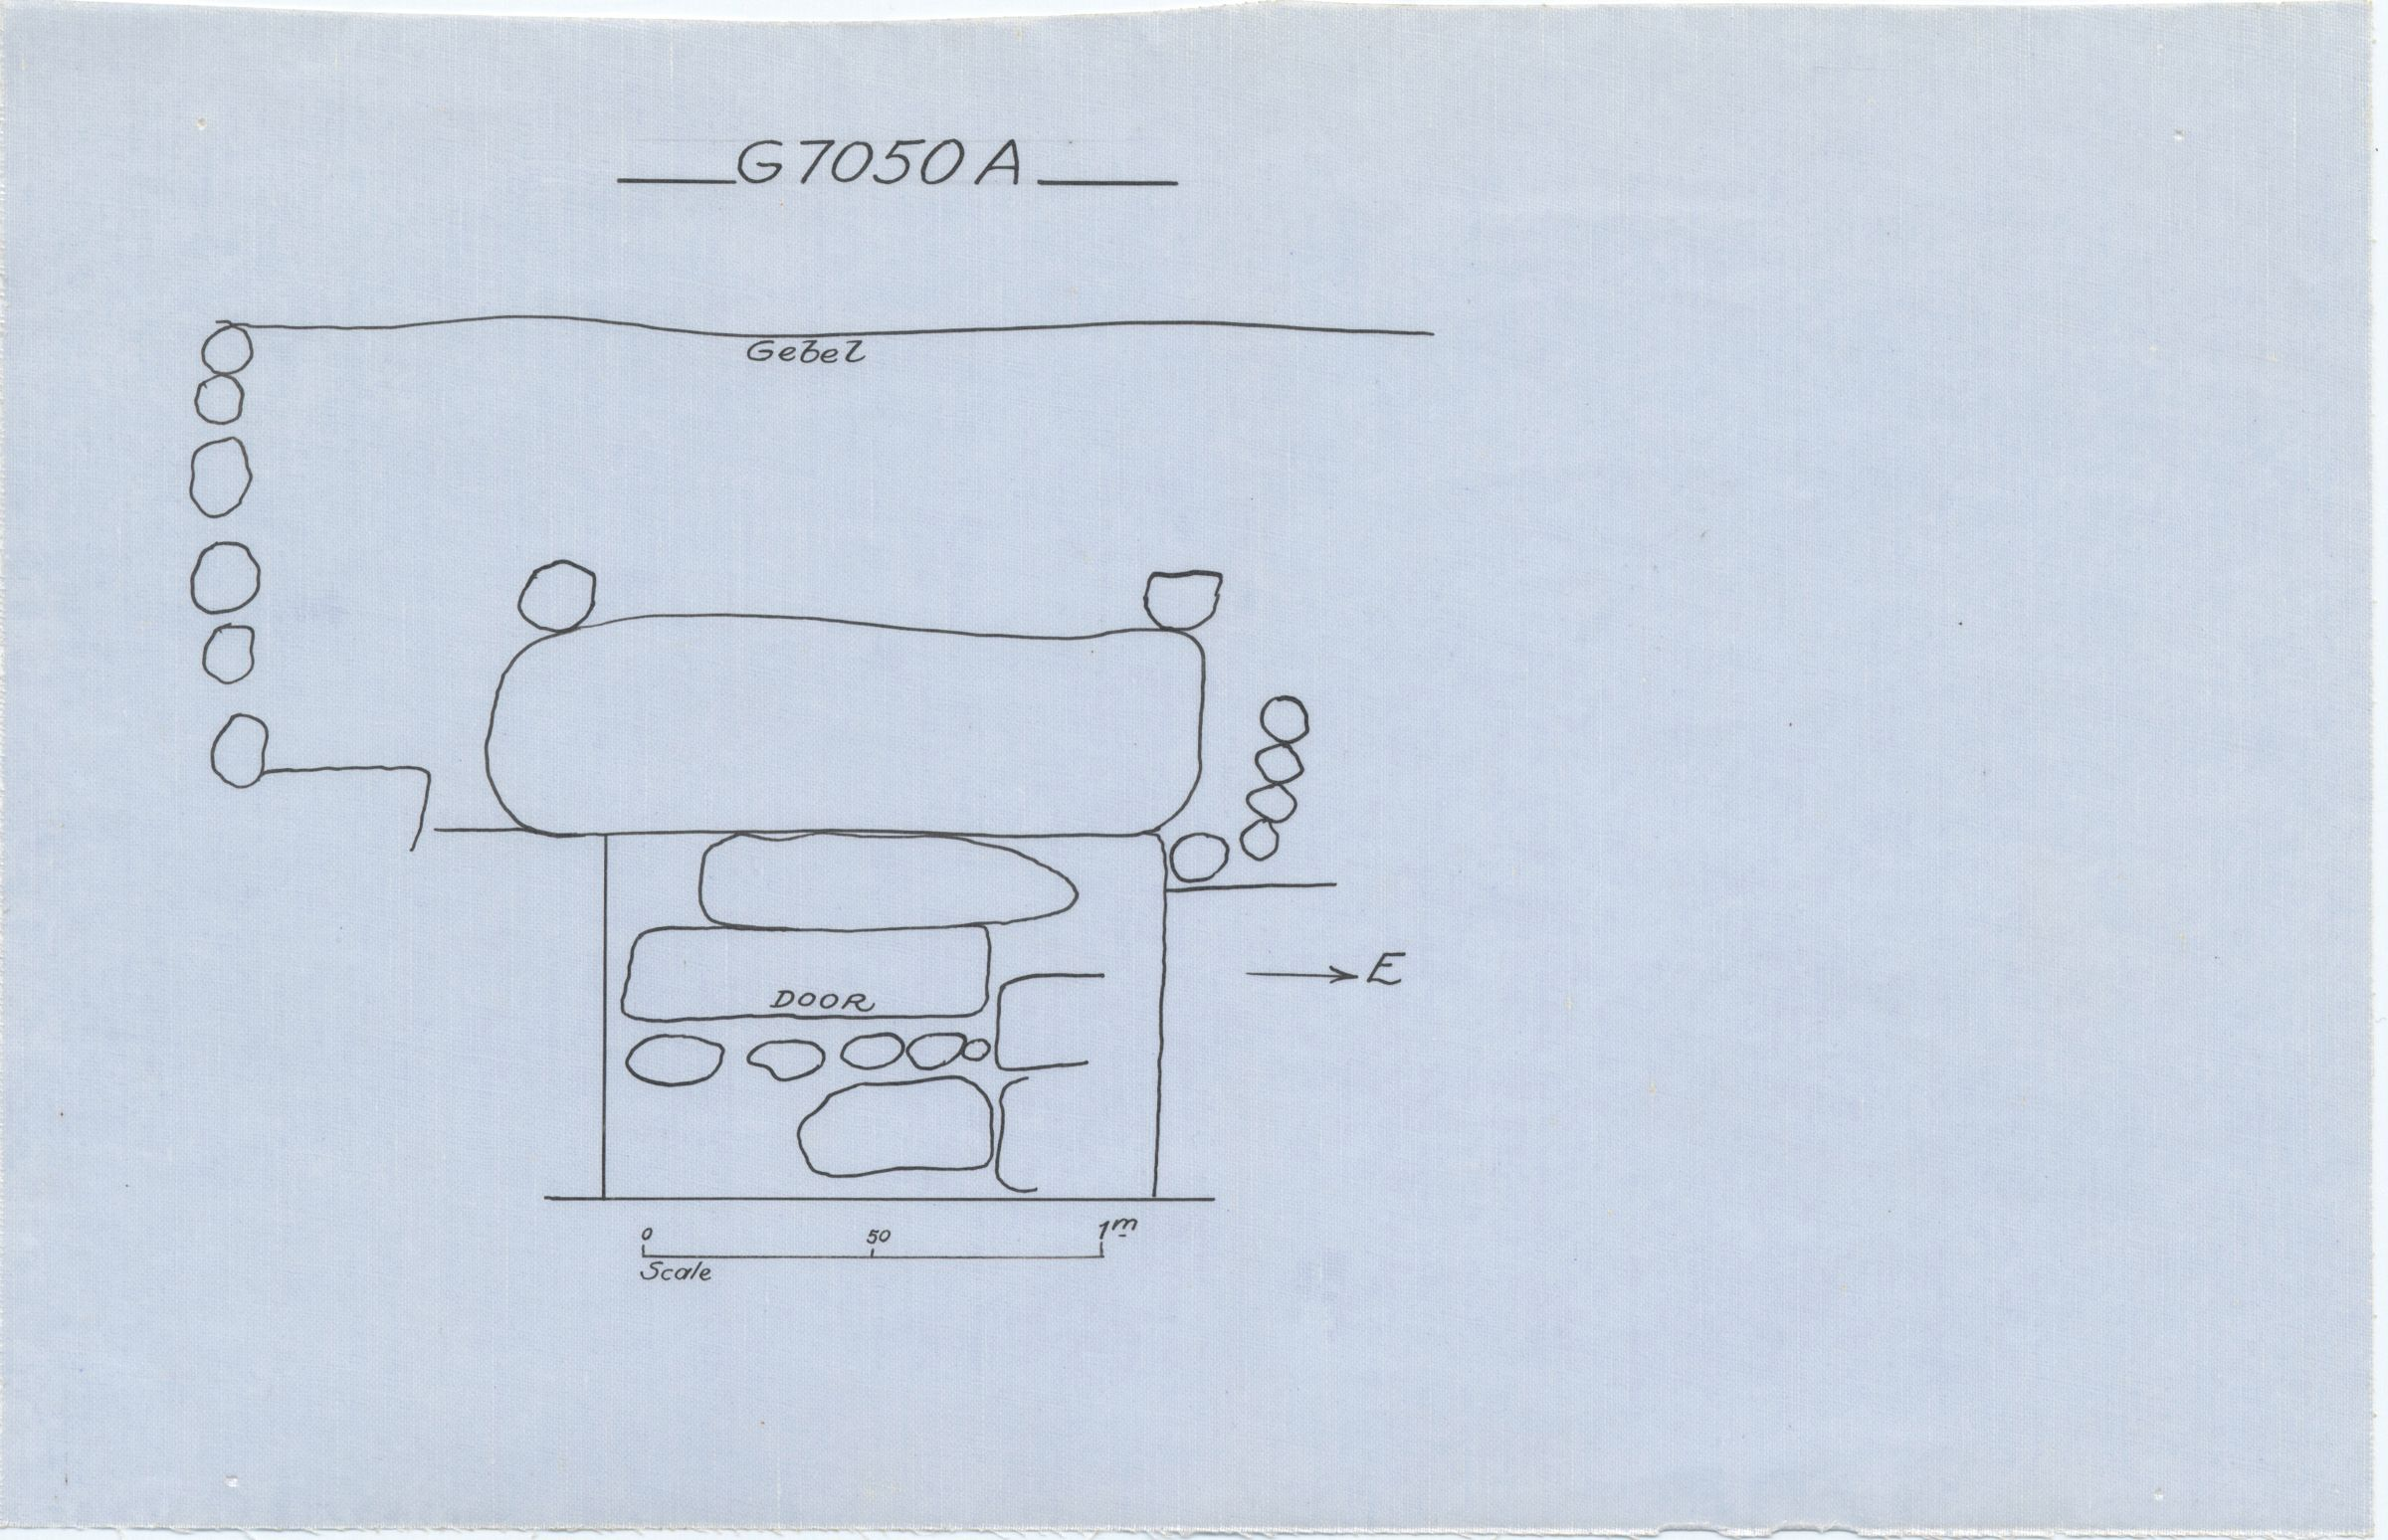 Maps and plans: G 7050, Shaft A